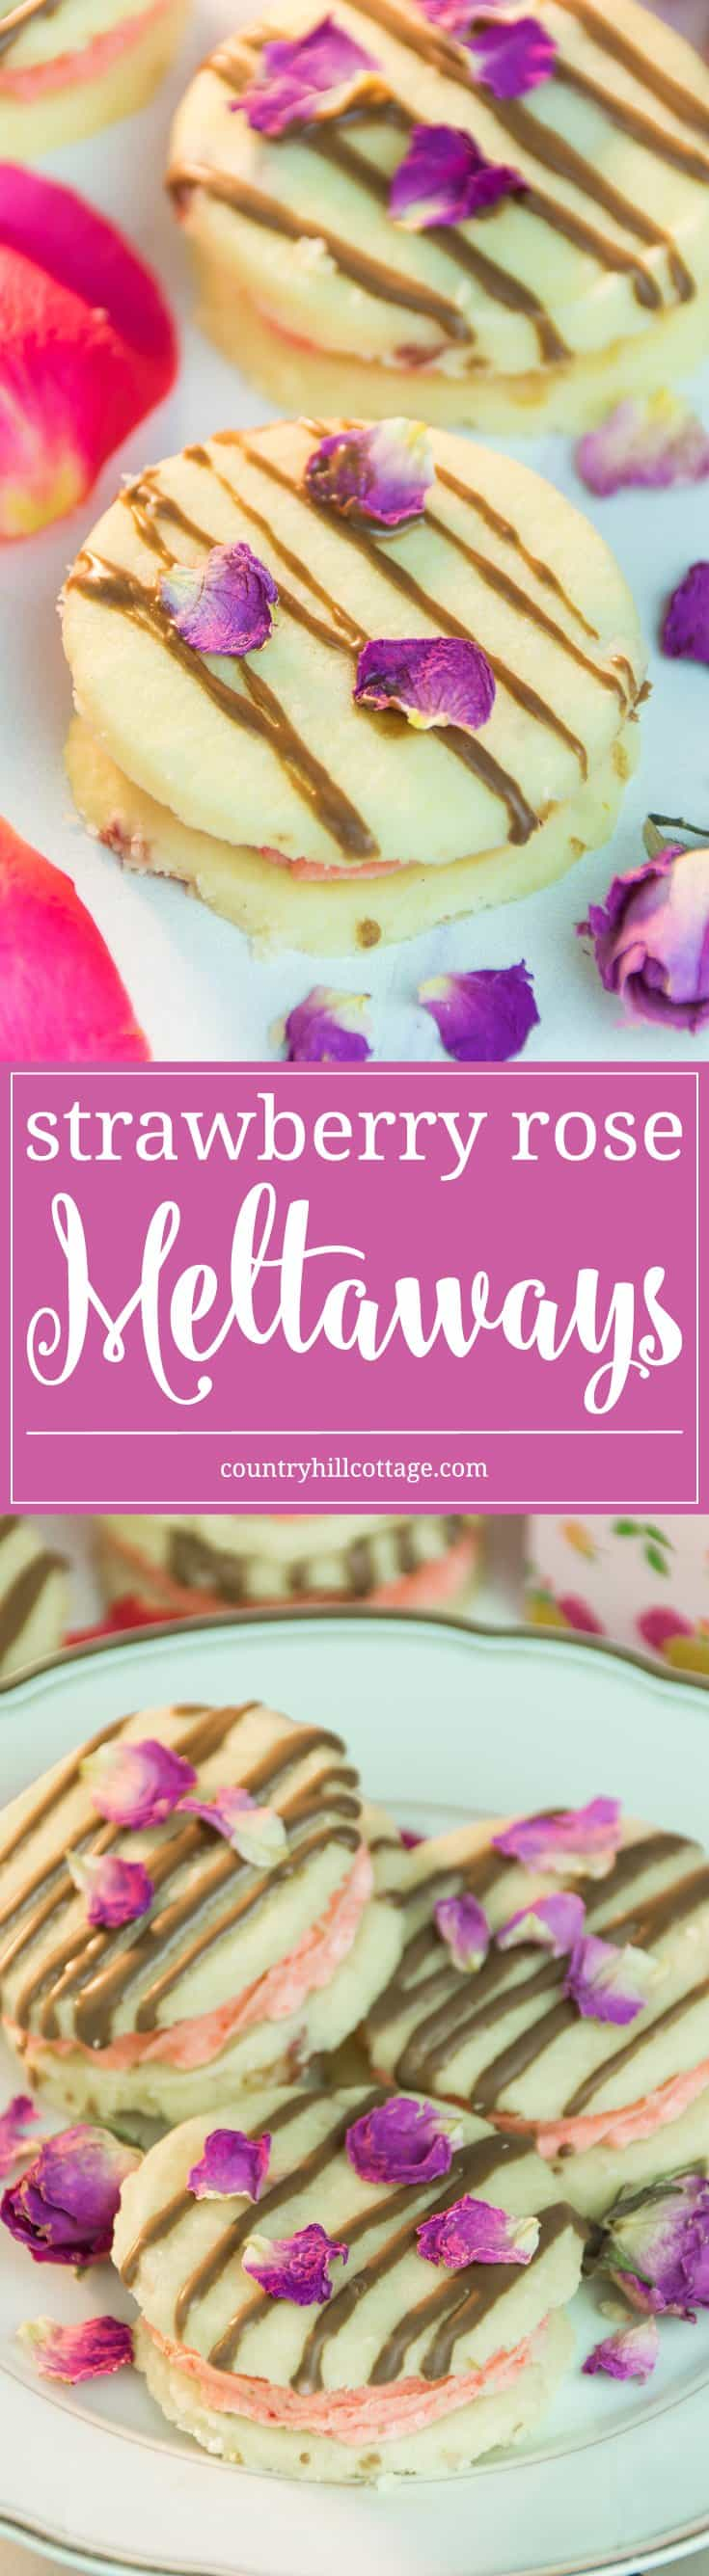 Our strawberry rose meltaways have a delicate, melt-in-your mouth texture. These biscuits are made with dried rose petals, and filled with an airy strawberry and rosewater buttercream. #strawberry #rose #cookies | countryhillcottage.com